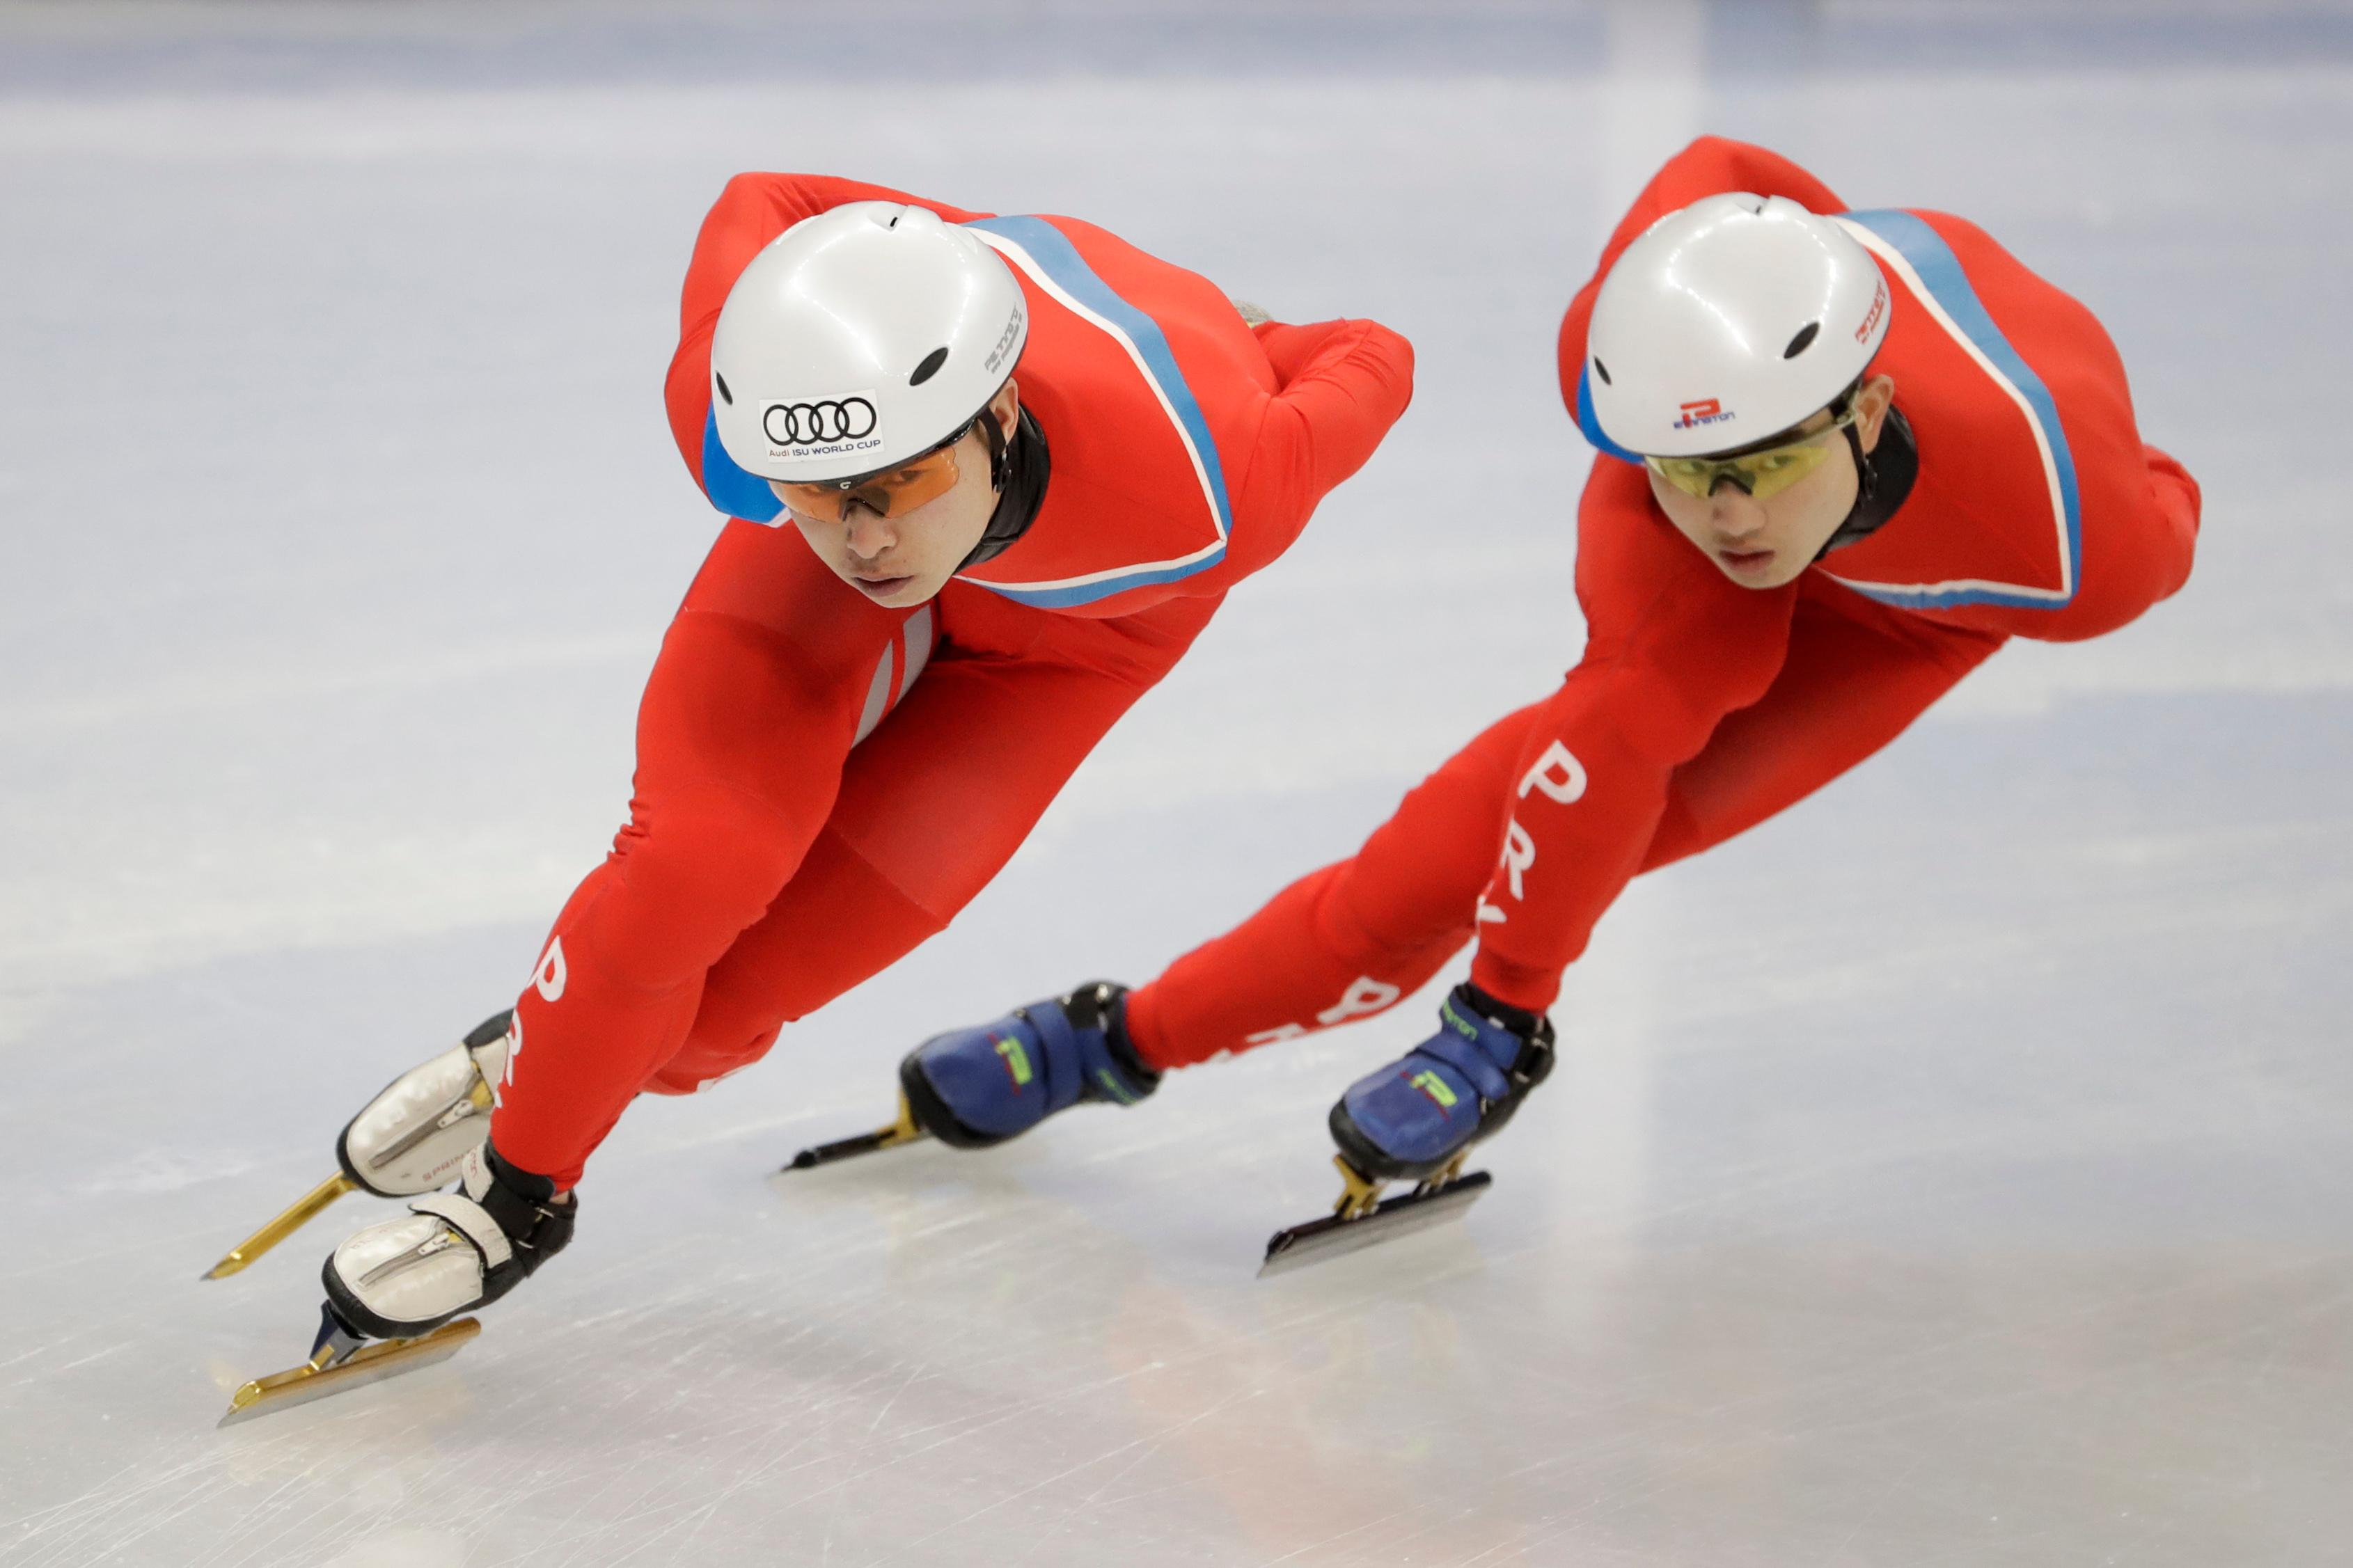 CORRECT TO NORTH KOREA, NOT SOUTH KOREA - North Korea's Choe Un Song, left and Jong Kwang Bom during a Men's Short Track Speed Skating training session ahead of the 2018 Winter Olympics in Gangneung, South Korea, Friday, Feb. 2, 2018. (AP Photo/Felipe Dana)